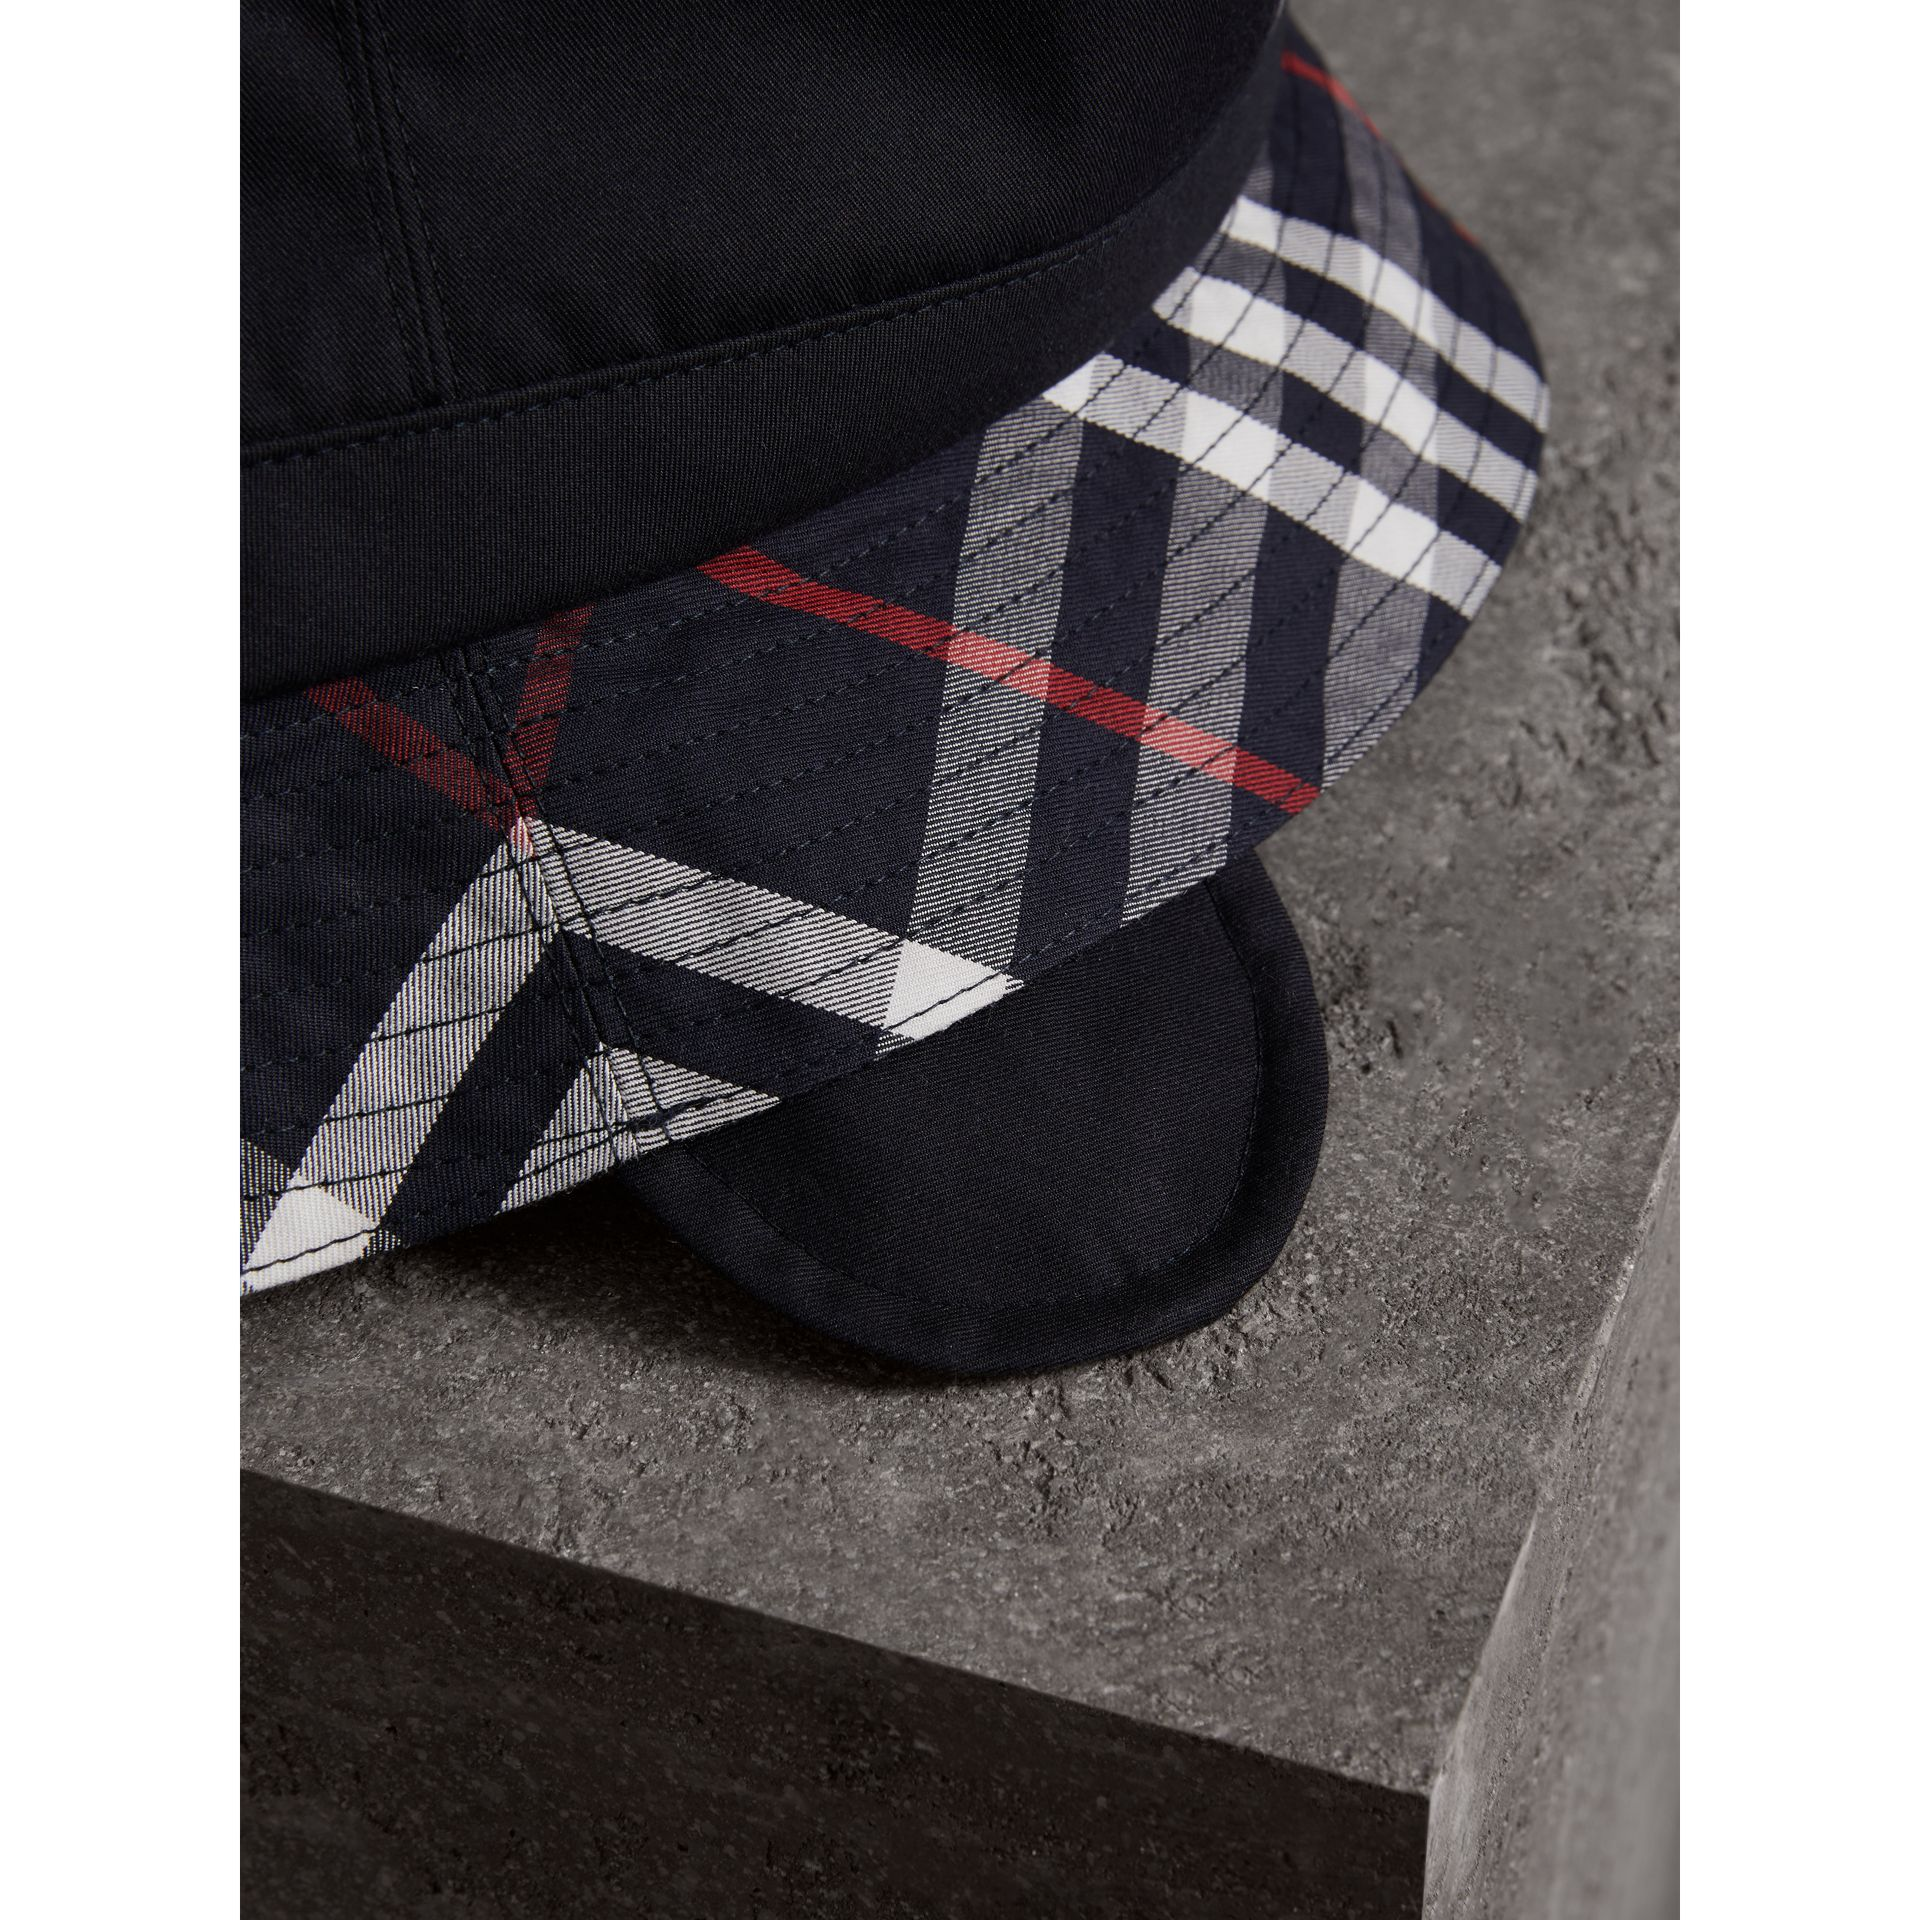 Gosha x Burberry Bucket Hat in Navy | Burberry - gallery image 1